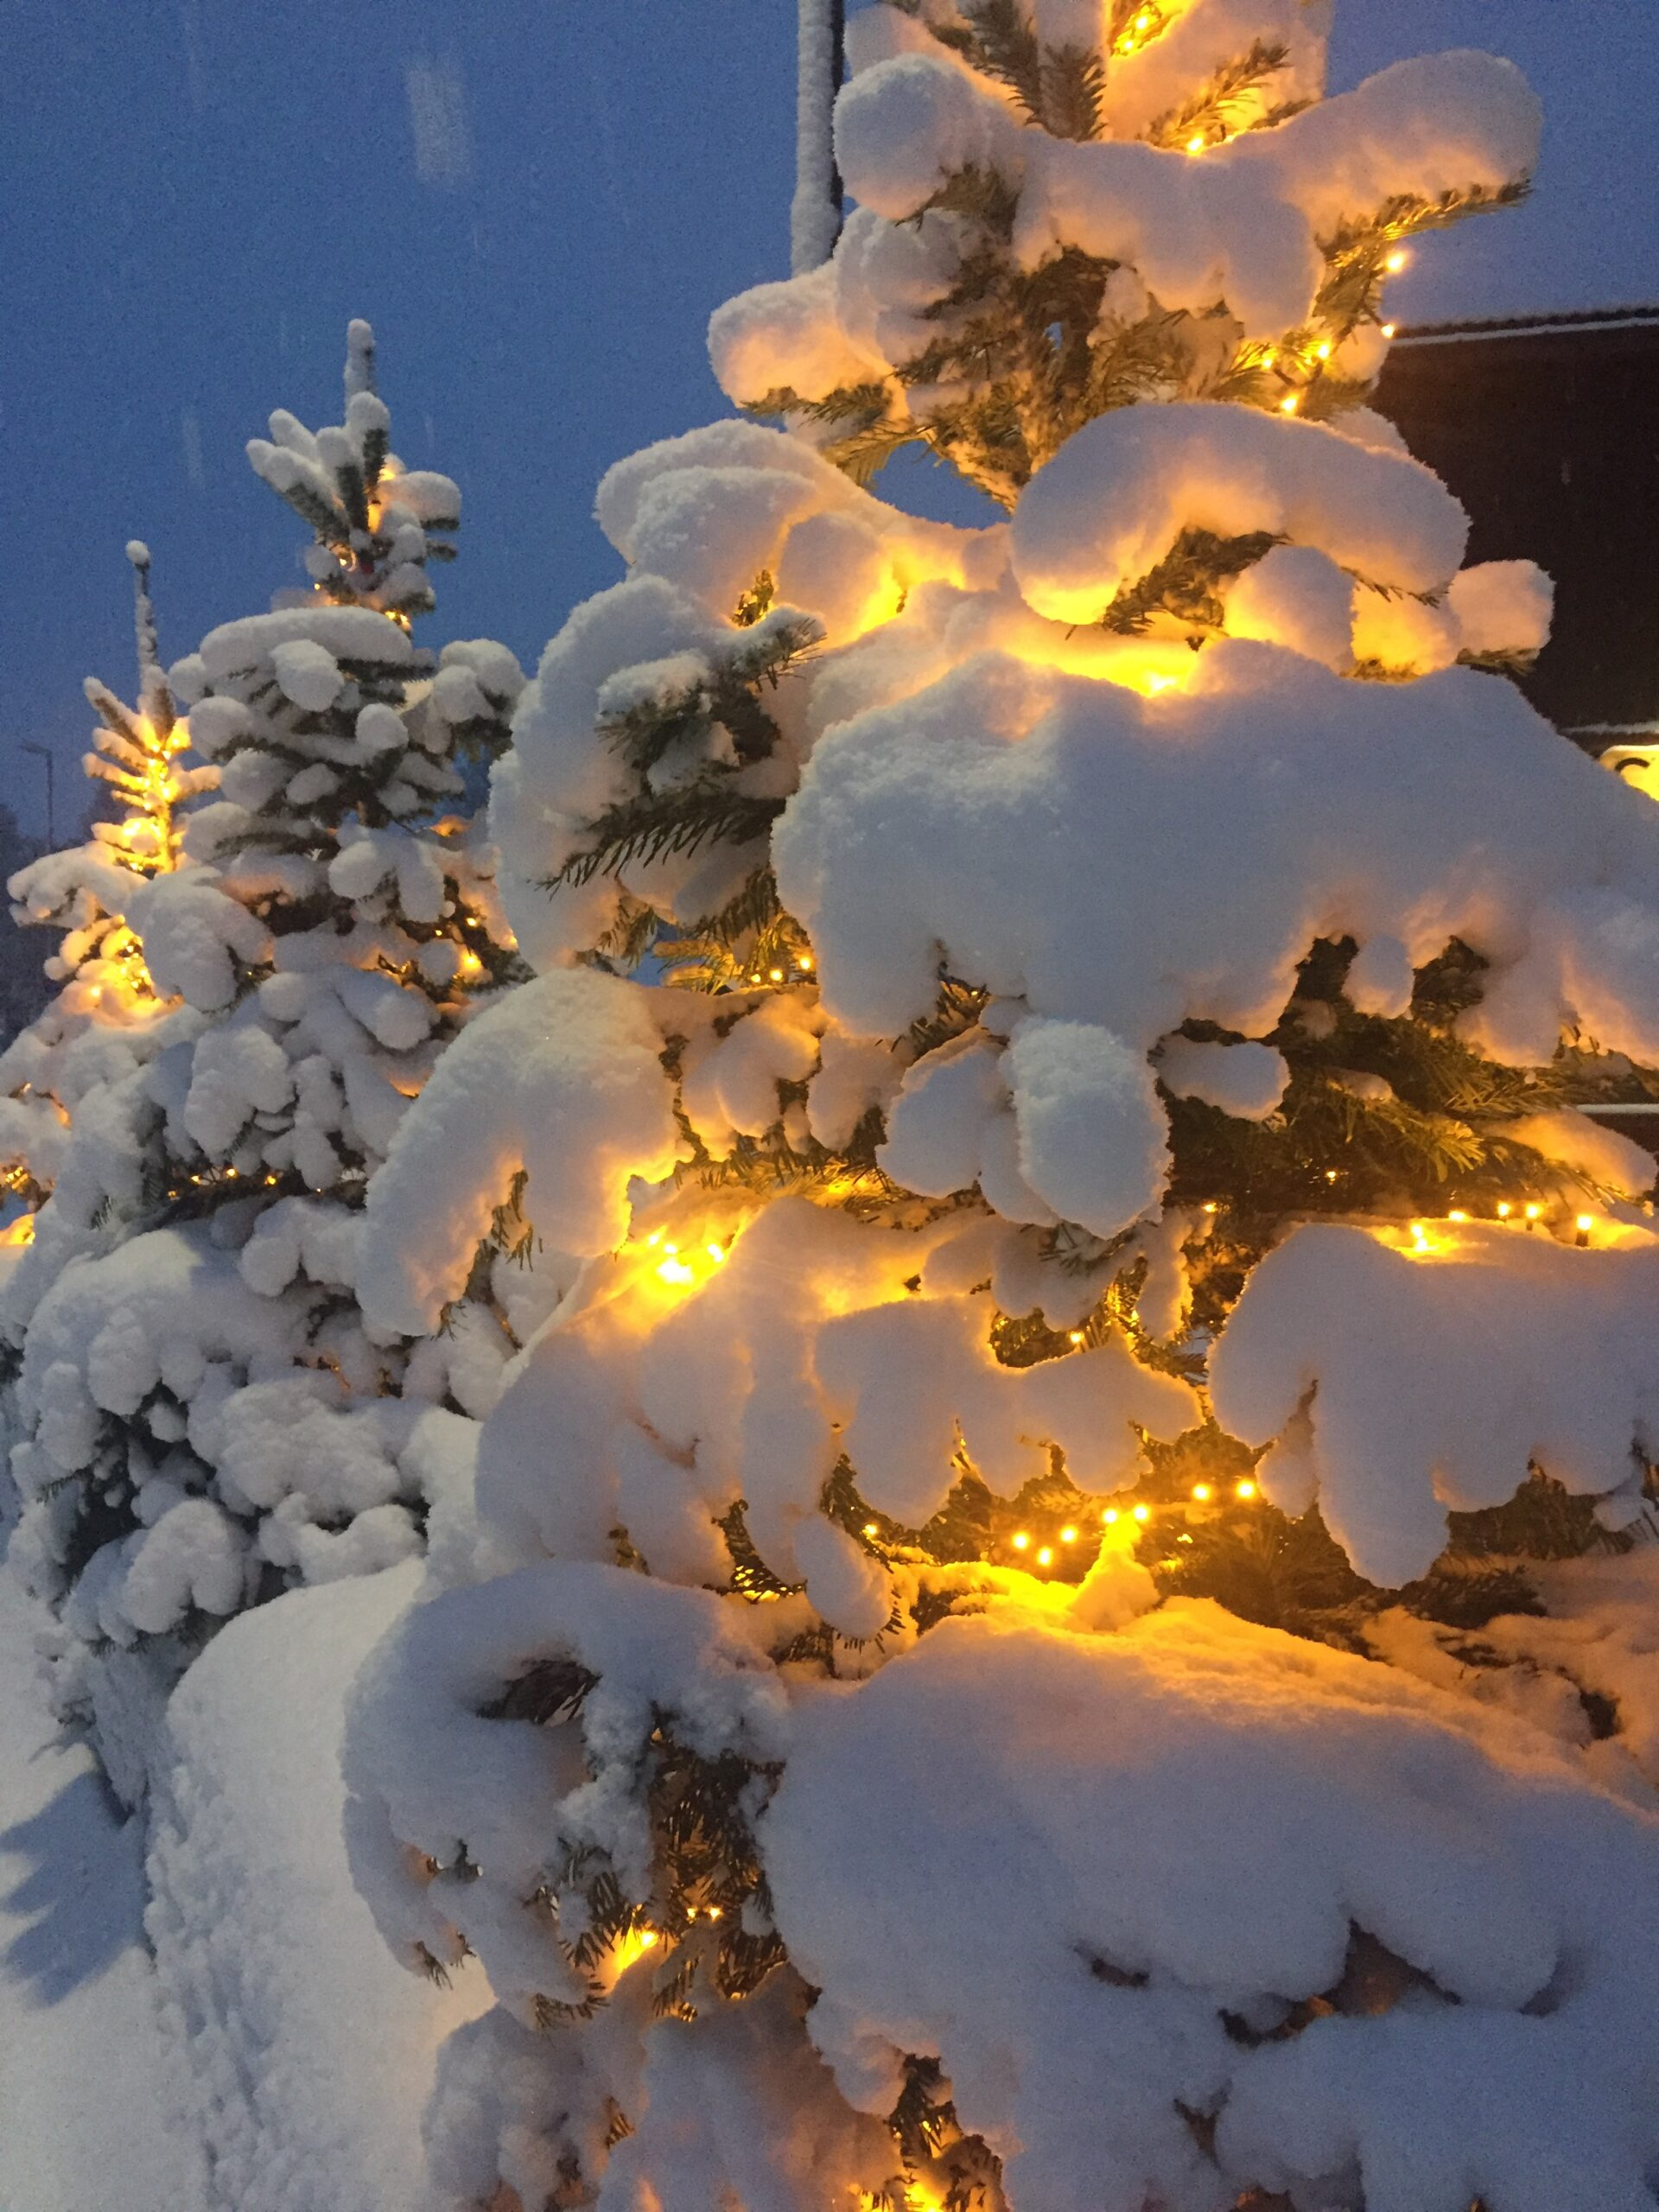 Snow-covered Christmas trees